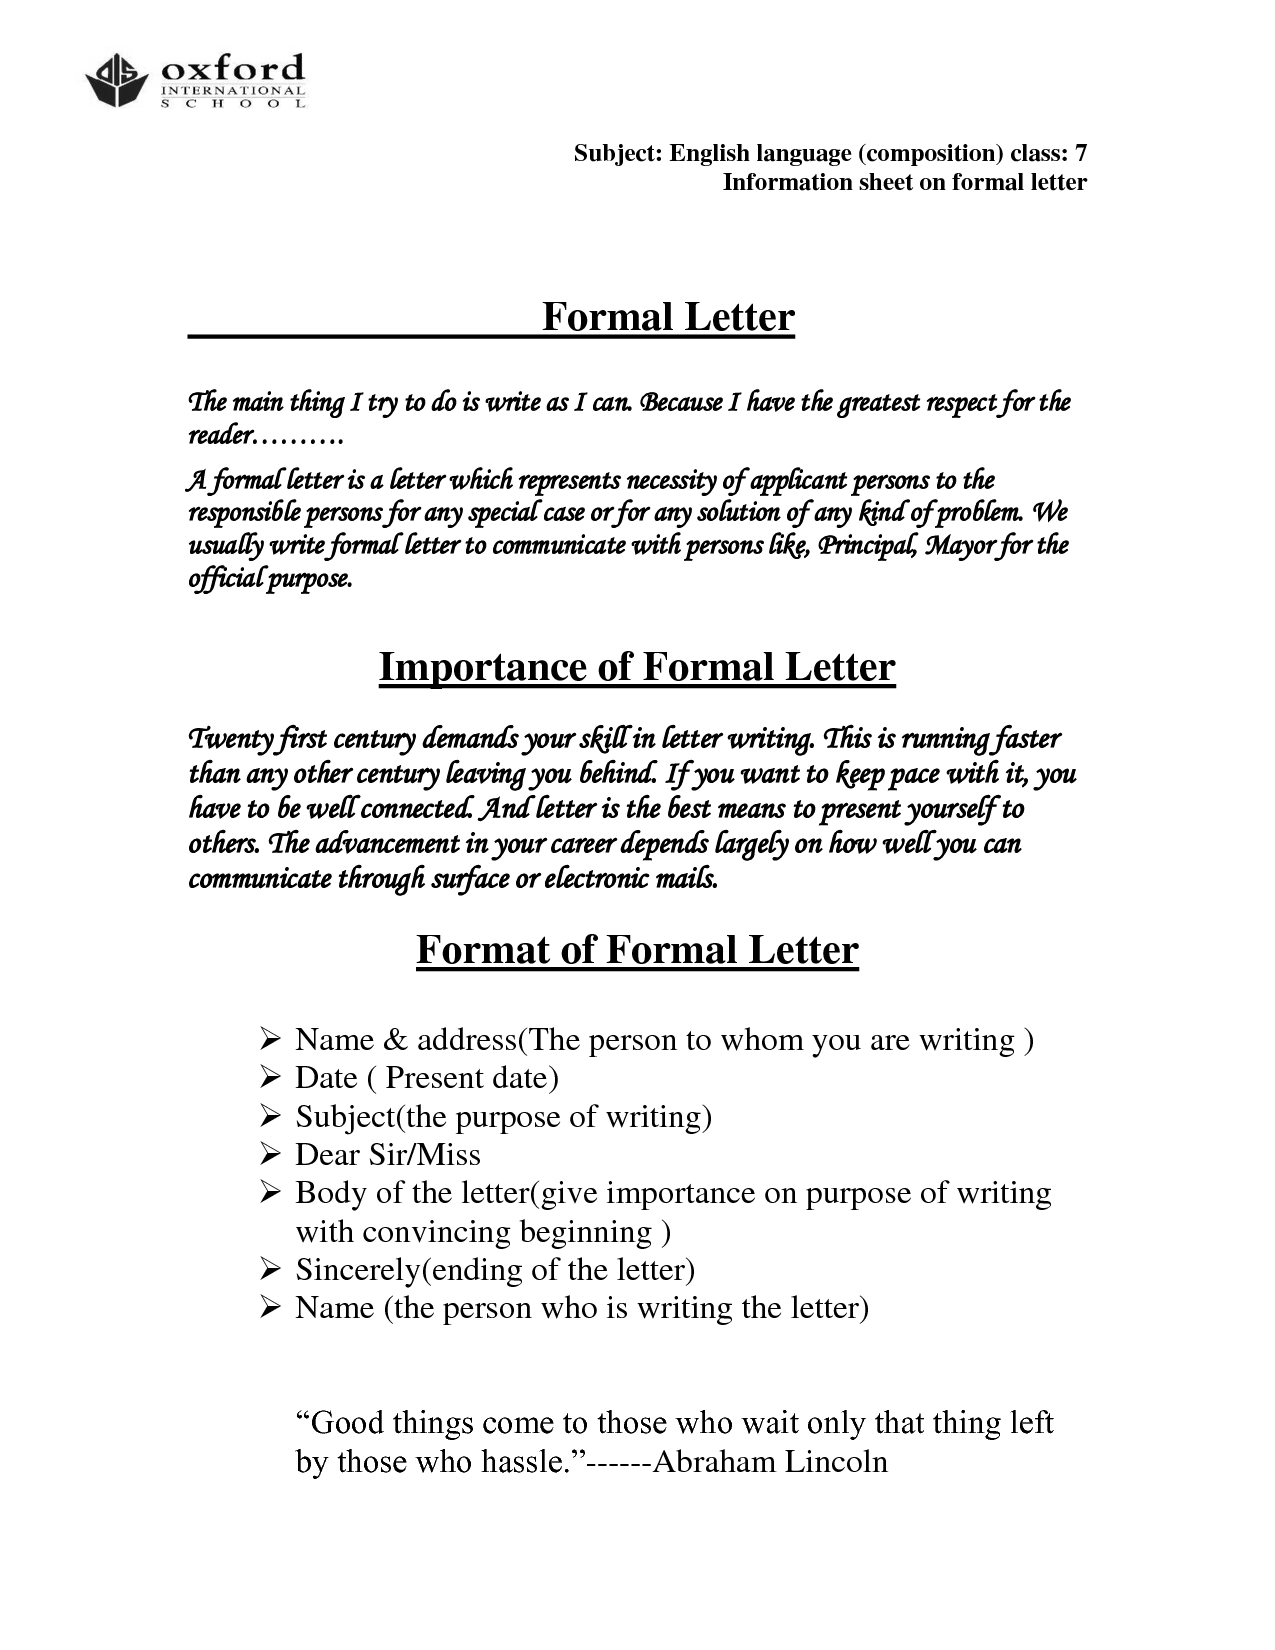 Official letter format templateofficial letter business letter official letter format templateofficial letter business letter sample spiritdancerdesigns Choice Image